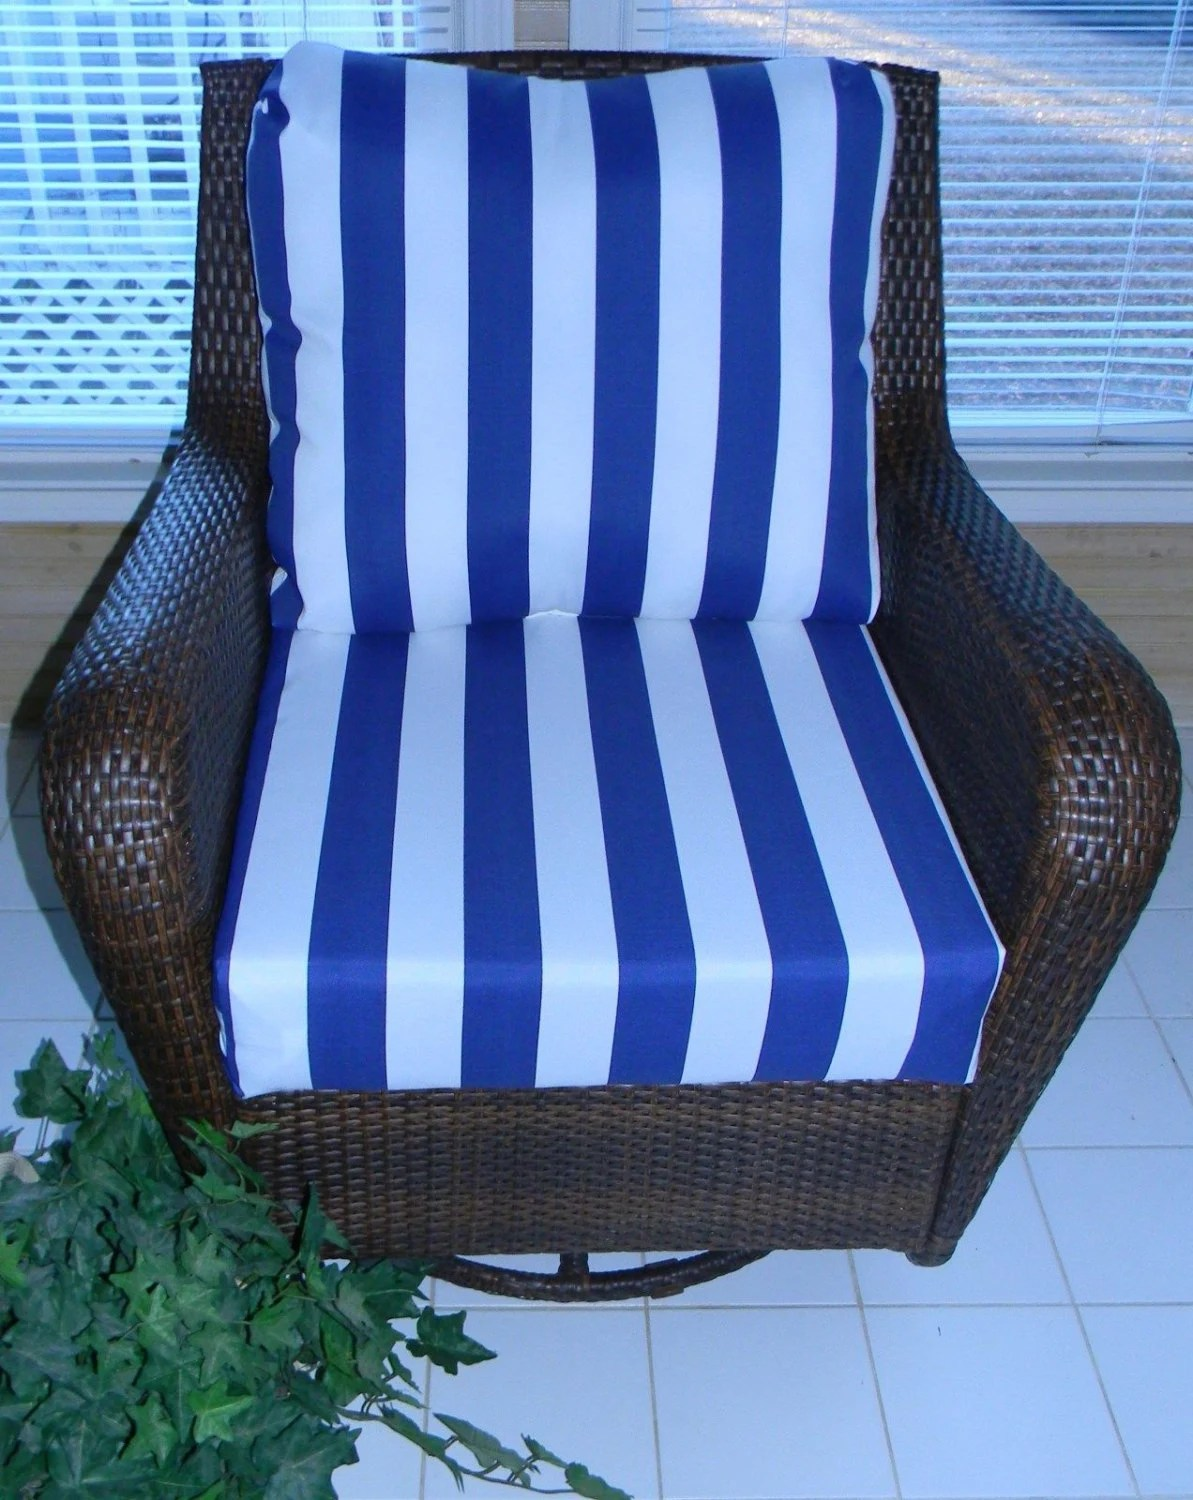 wicker patio chair set of 2 pier one navy blue & white stripe cushion for outdoor deep seat